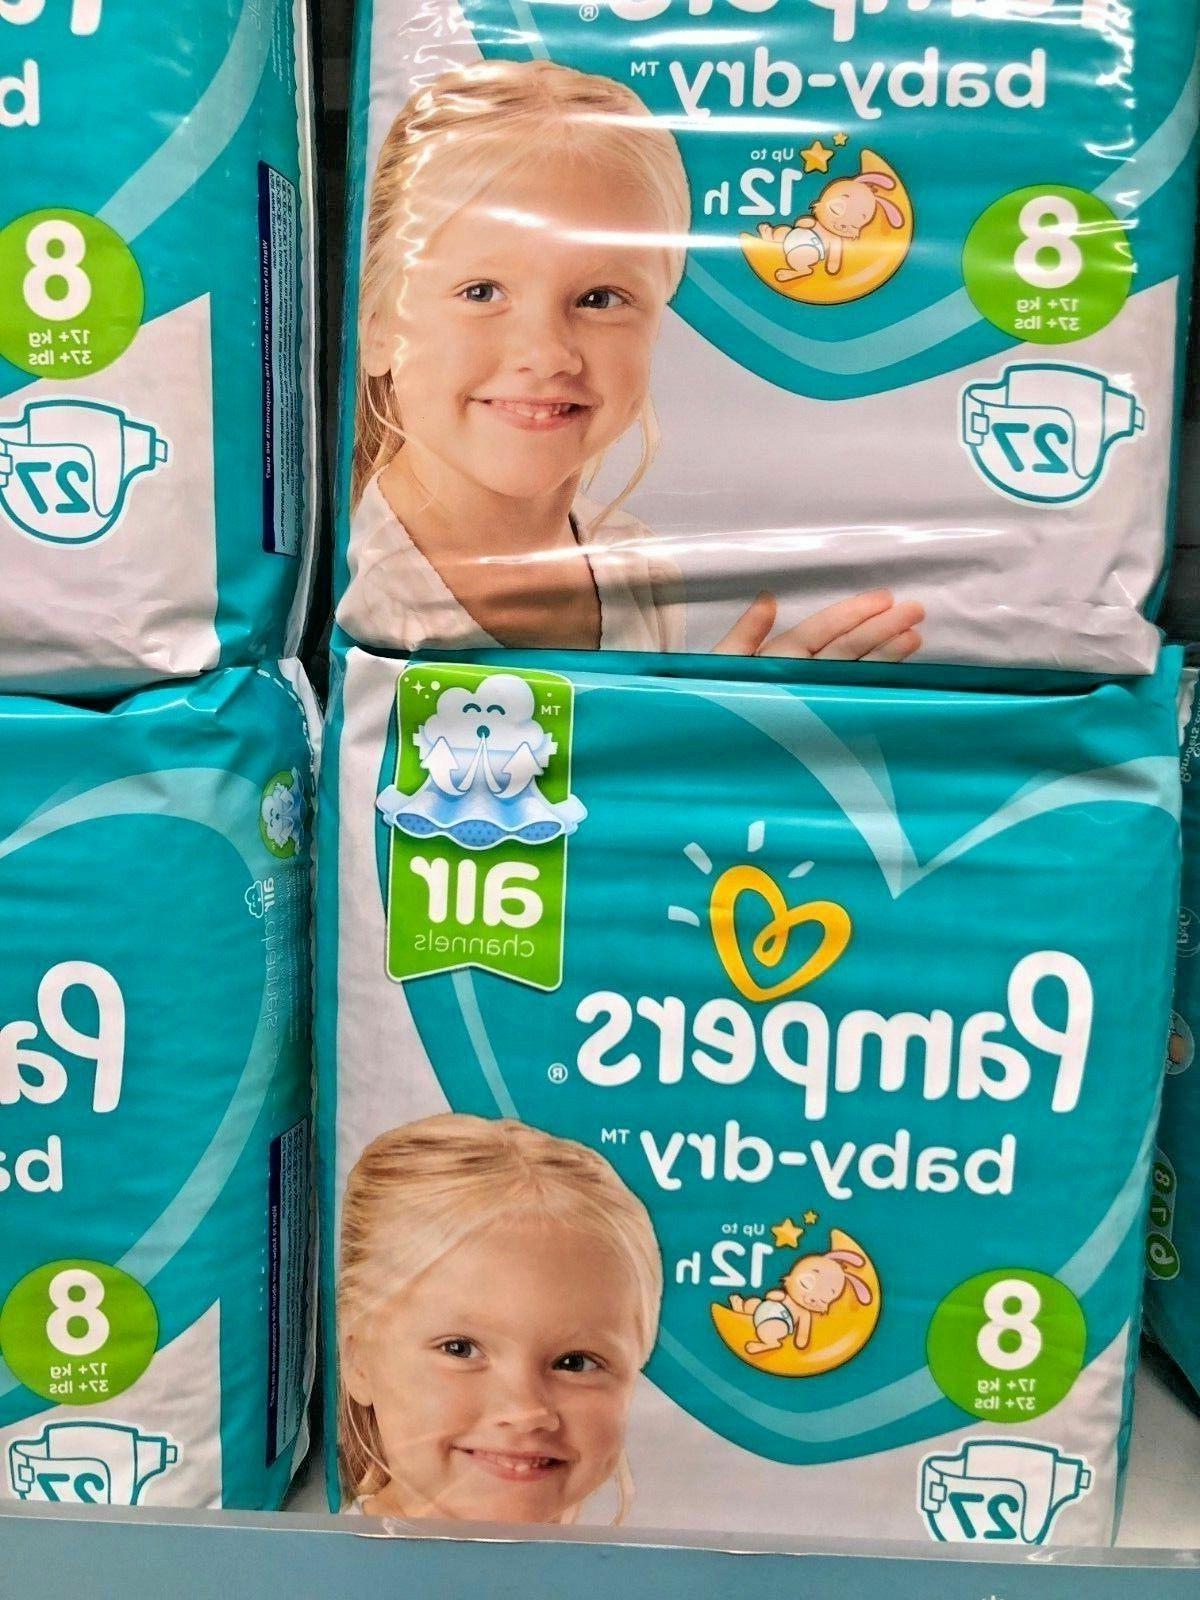 Pampers Baby Dry 8 Discrete Shipping European